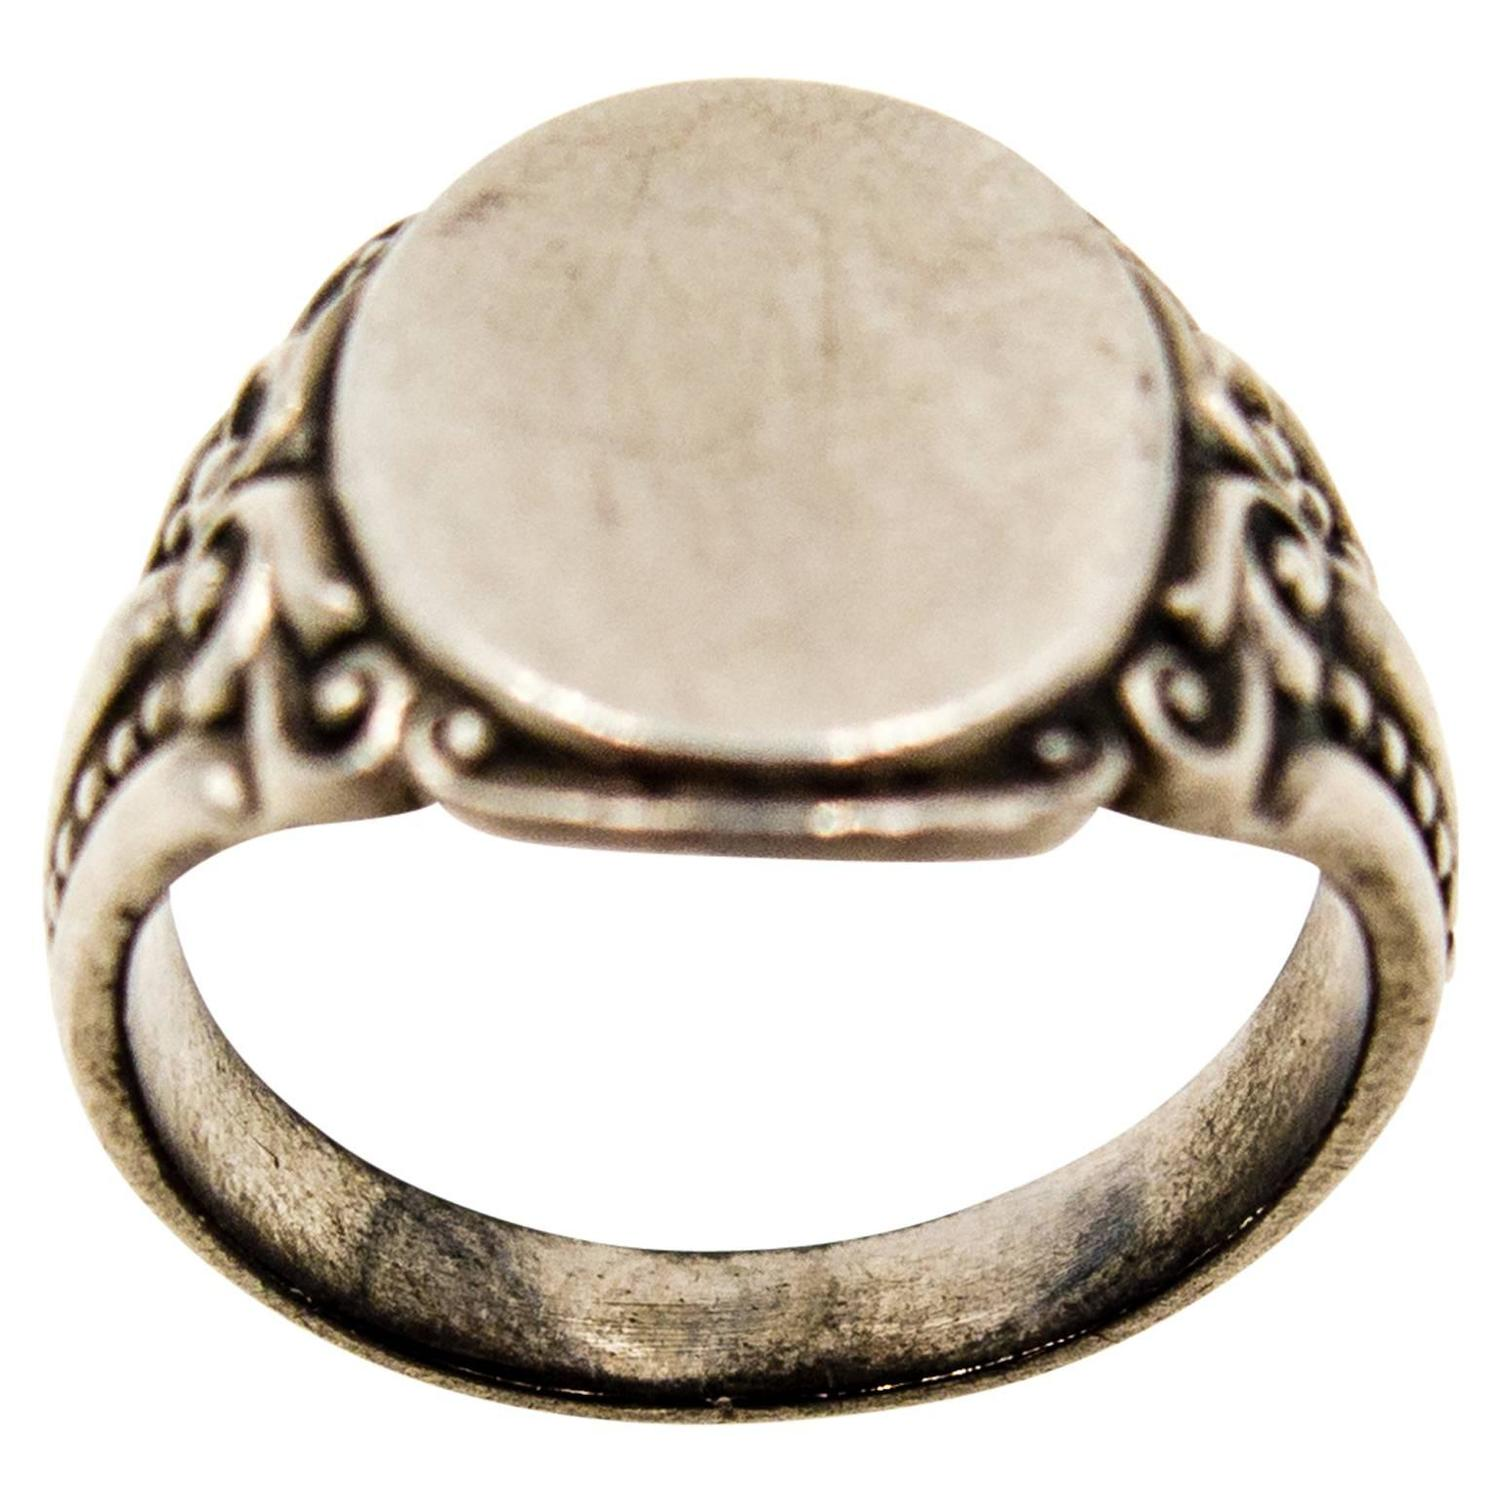 s antique silver signet ring for sale at 1stdibs